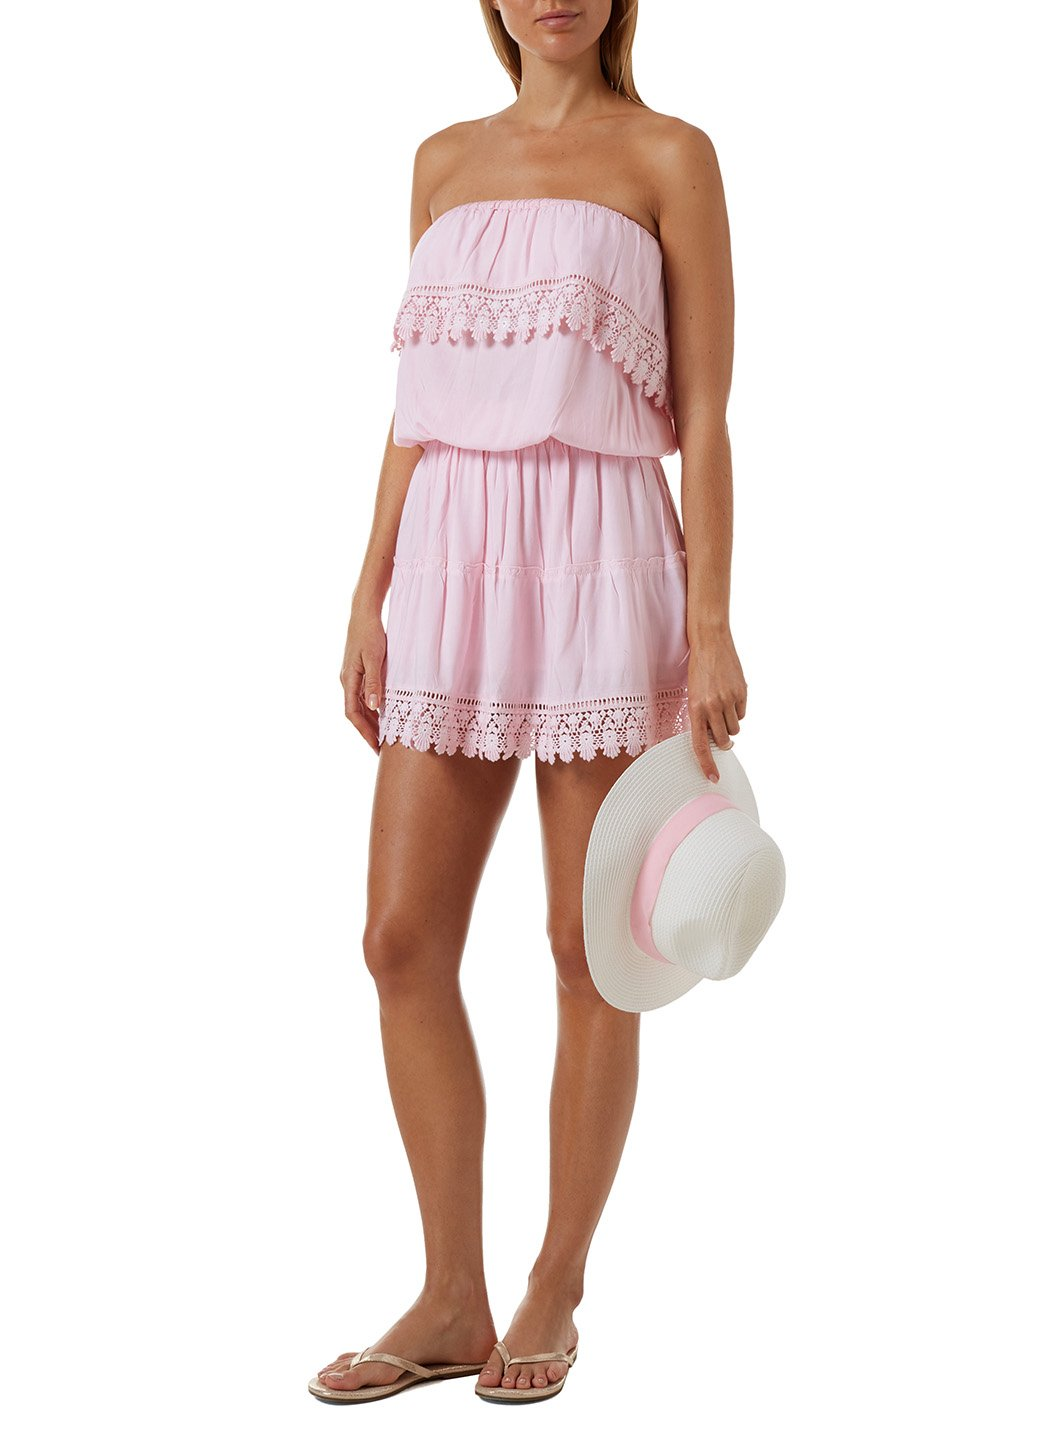 Joy Blush Dress